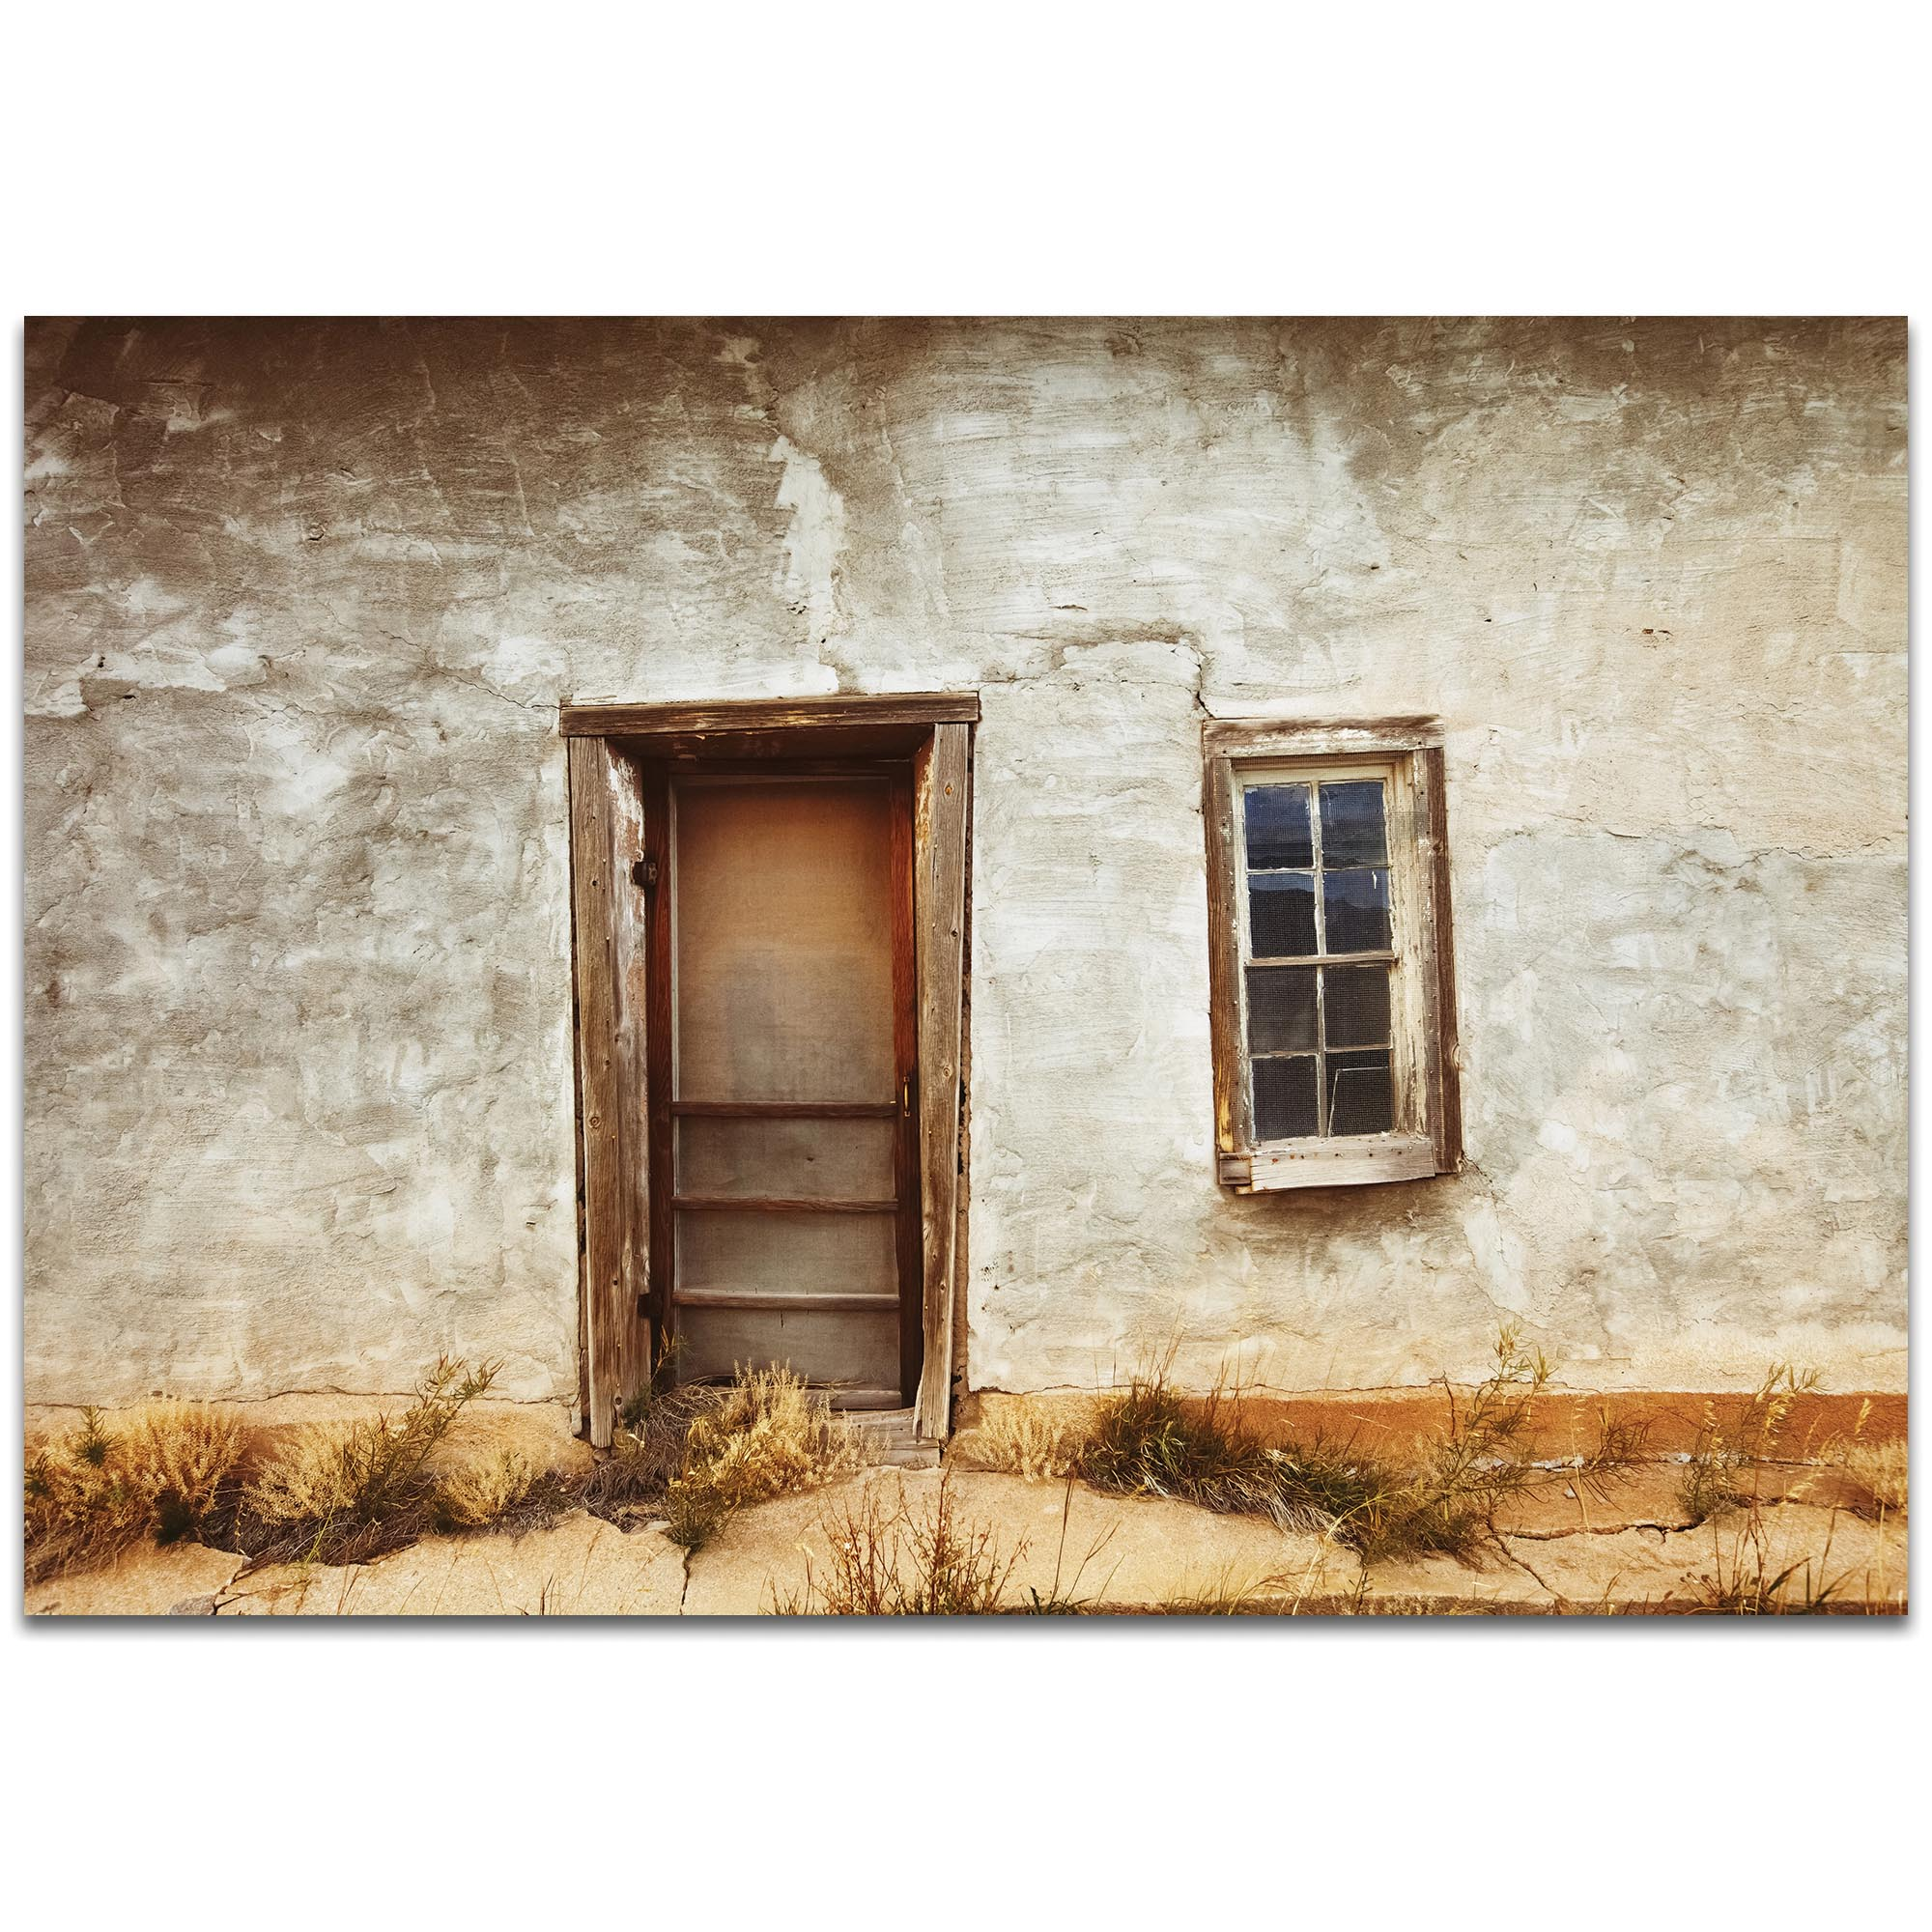 Eclectic Wall Art 'Southern Door' - Architecture Decor on Metal or Plexiglass